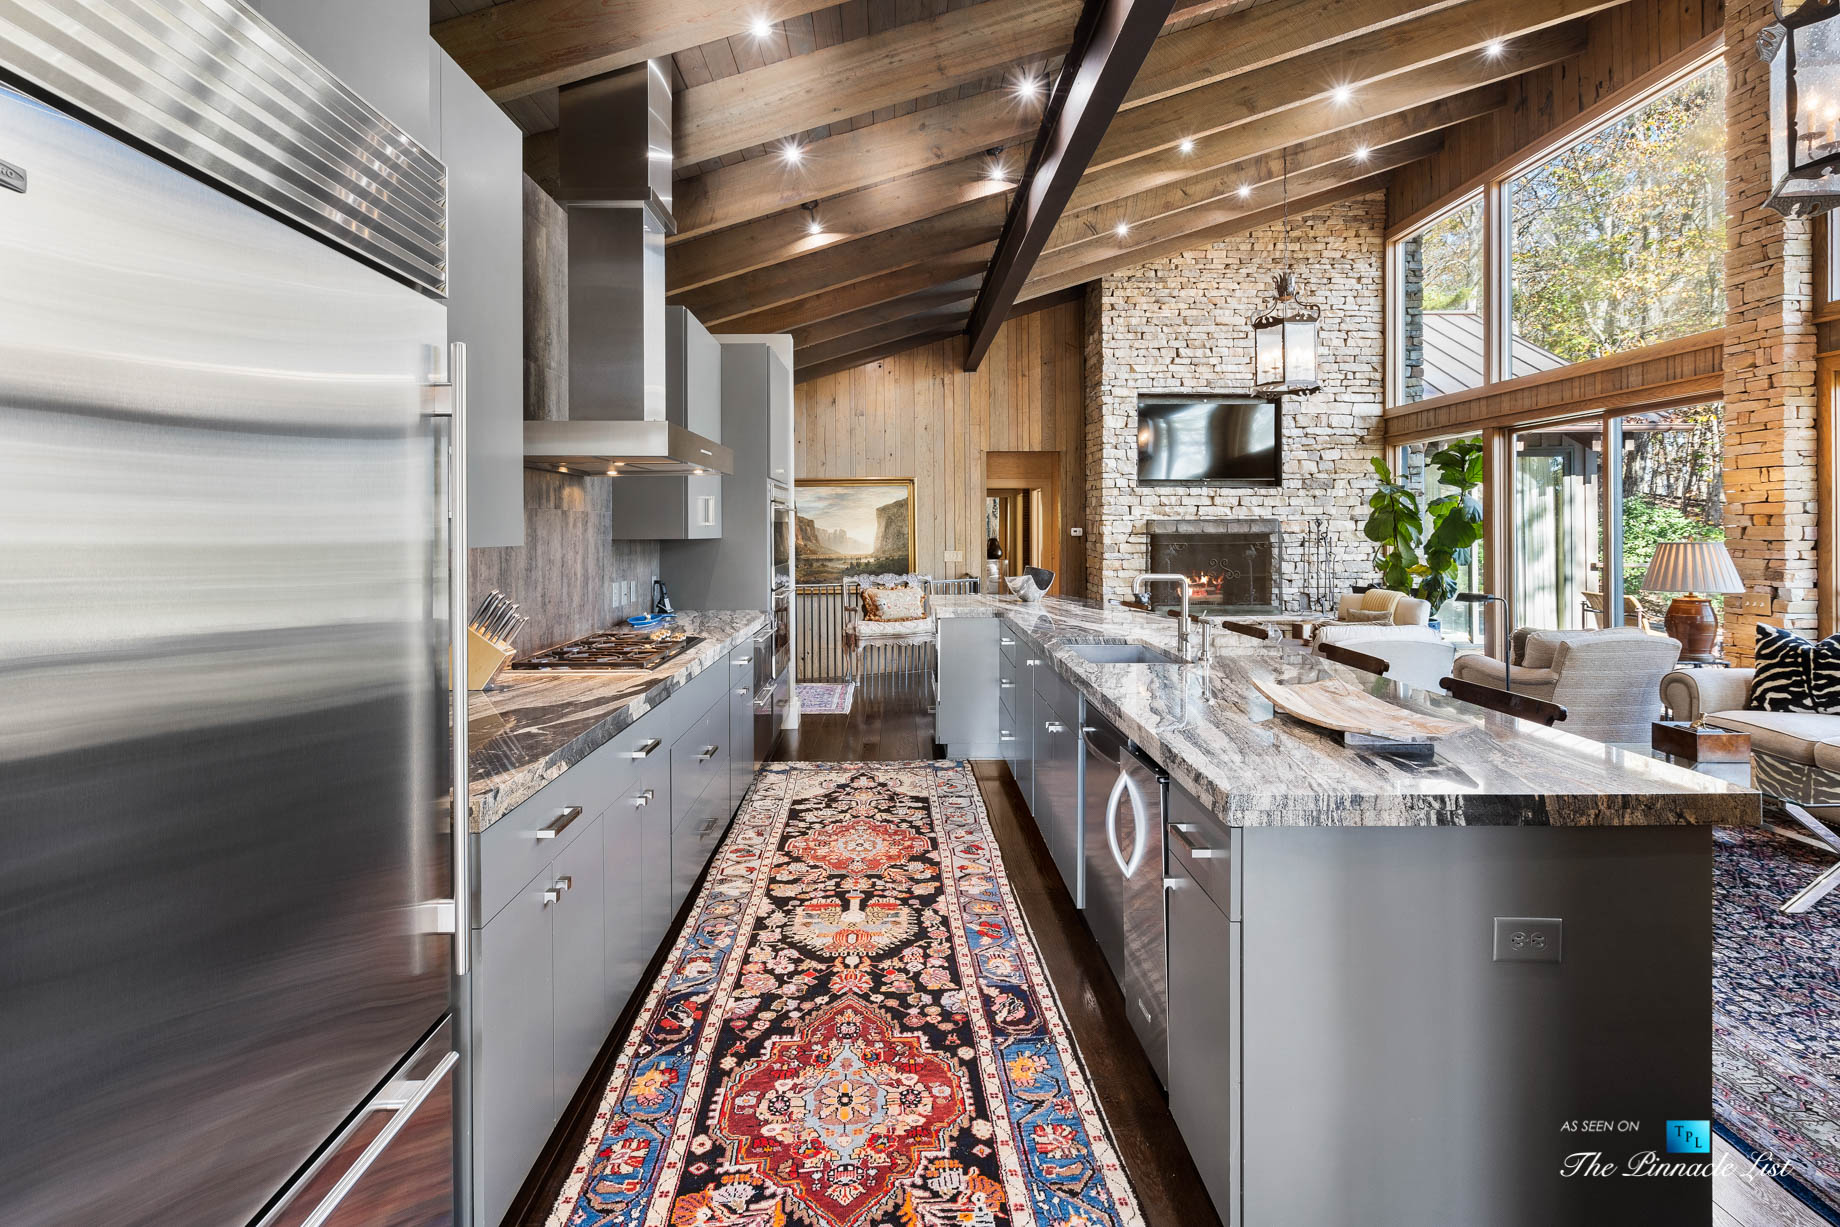 7860 Chestnut Hill Rd, Cumming, GA, USA – Kitchen and Living Room – Luxury Real Estate – Lake Lanier Mid-Century Modern Stone Home